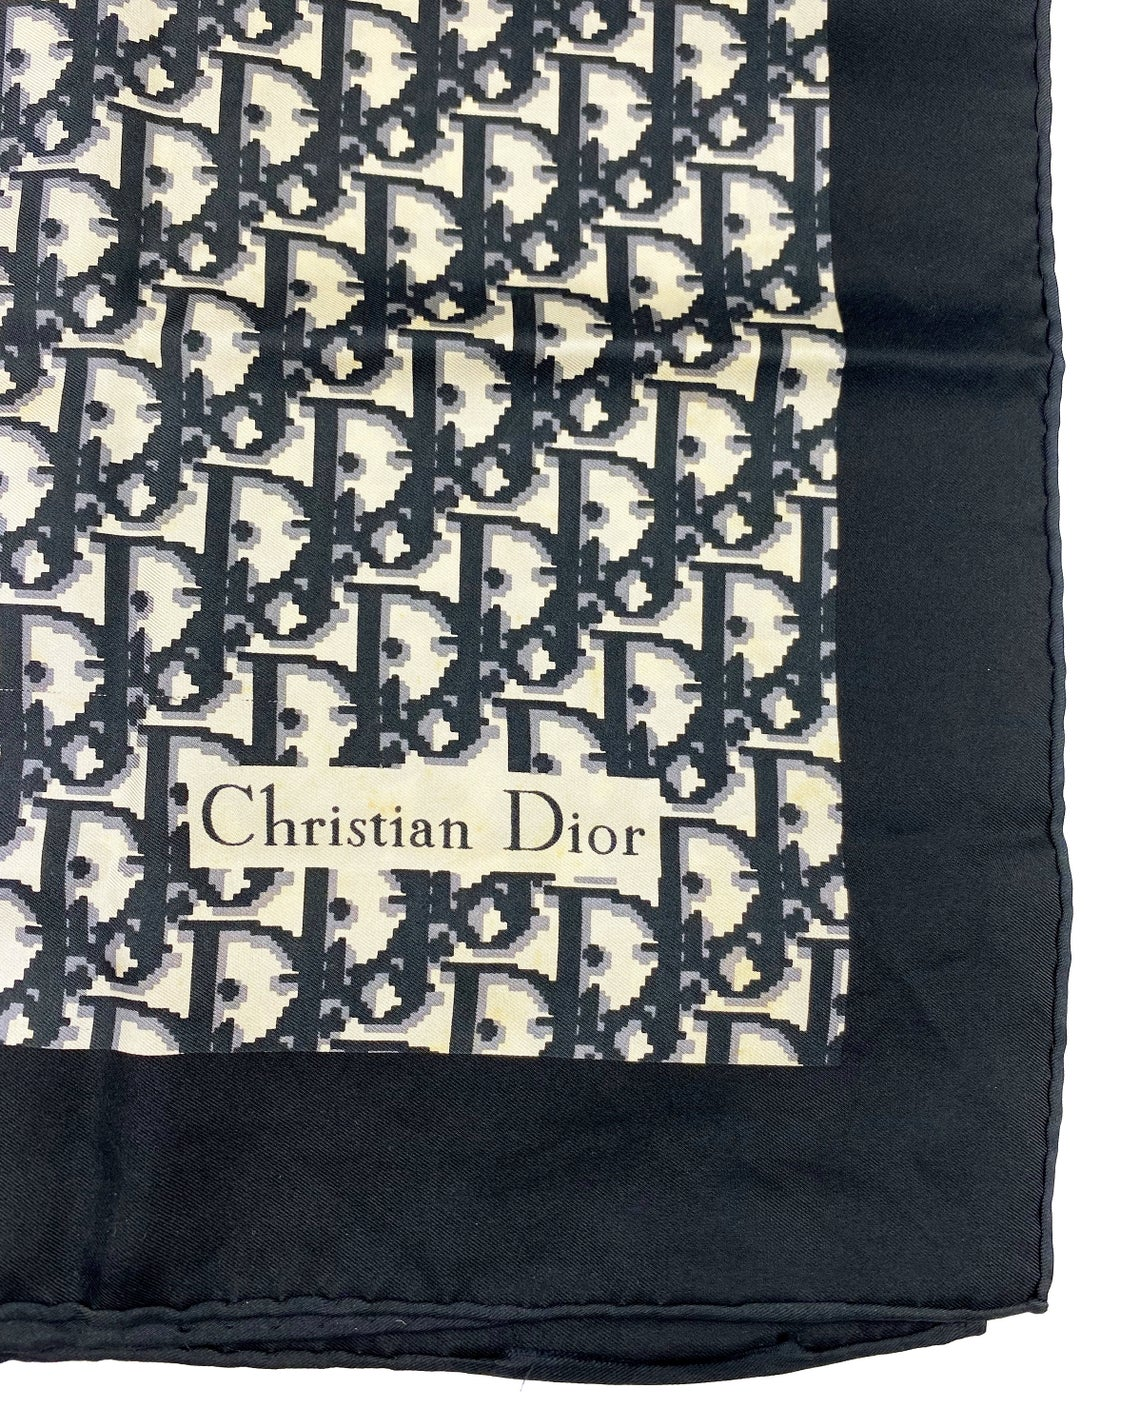 Fruit Vintage Christian Dior oblique print silk scarf in black and grey. Features a bold graphic Dior logo print and hand finished rolled hem edging.